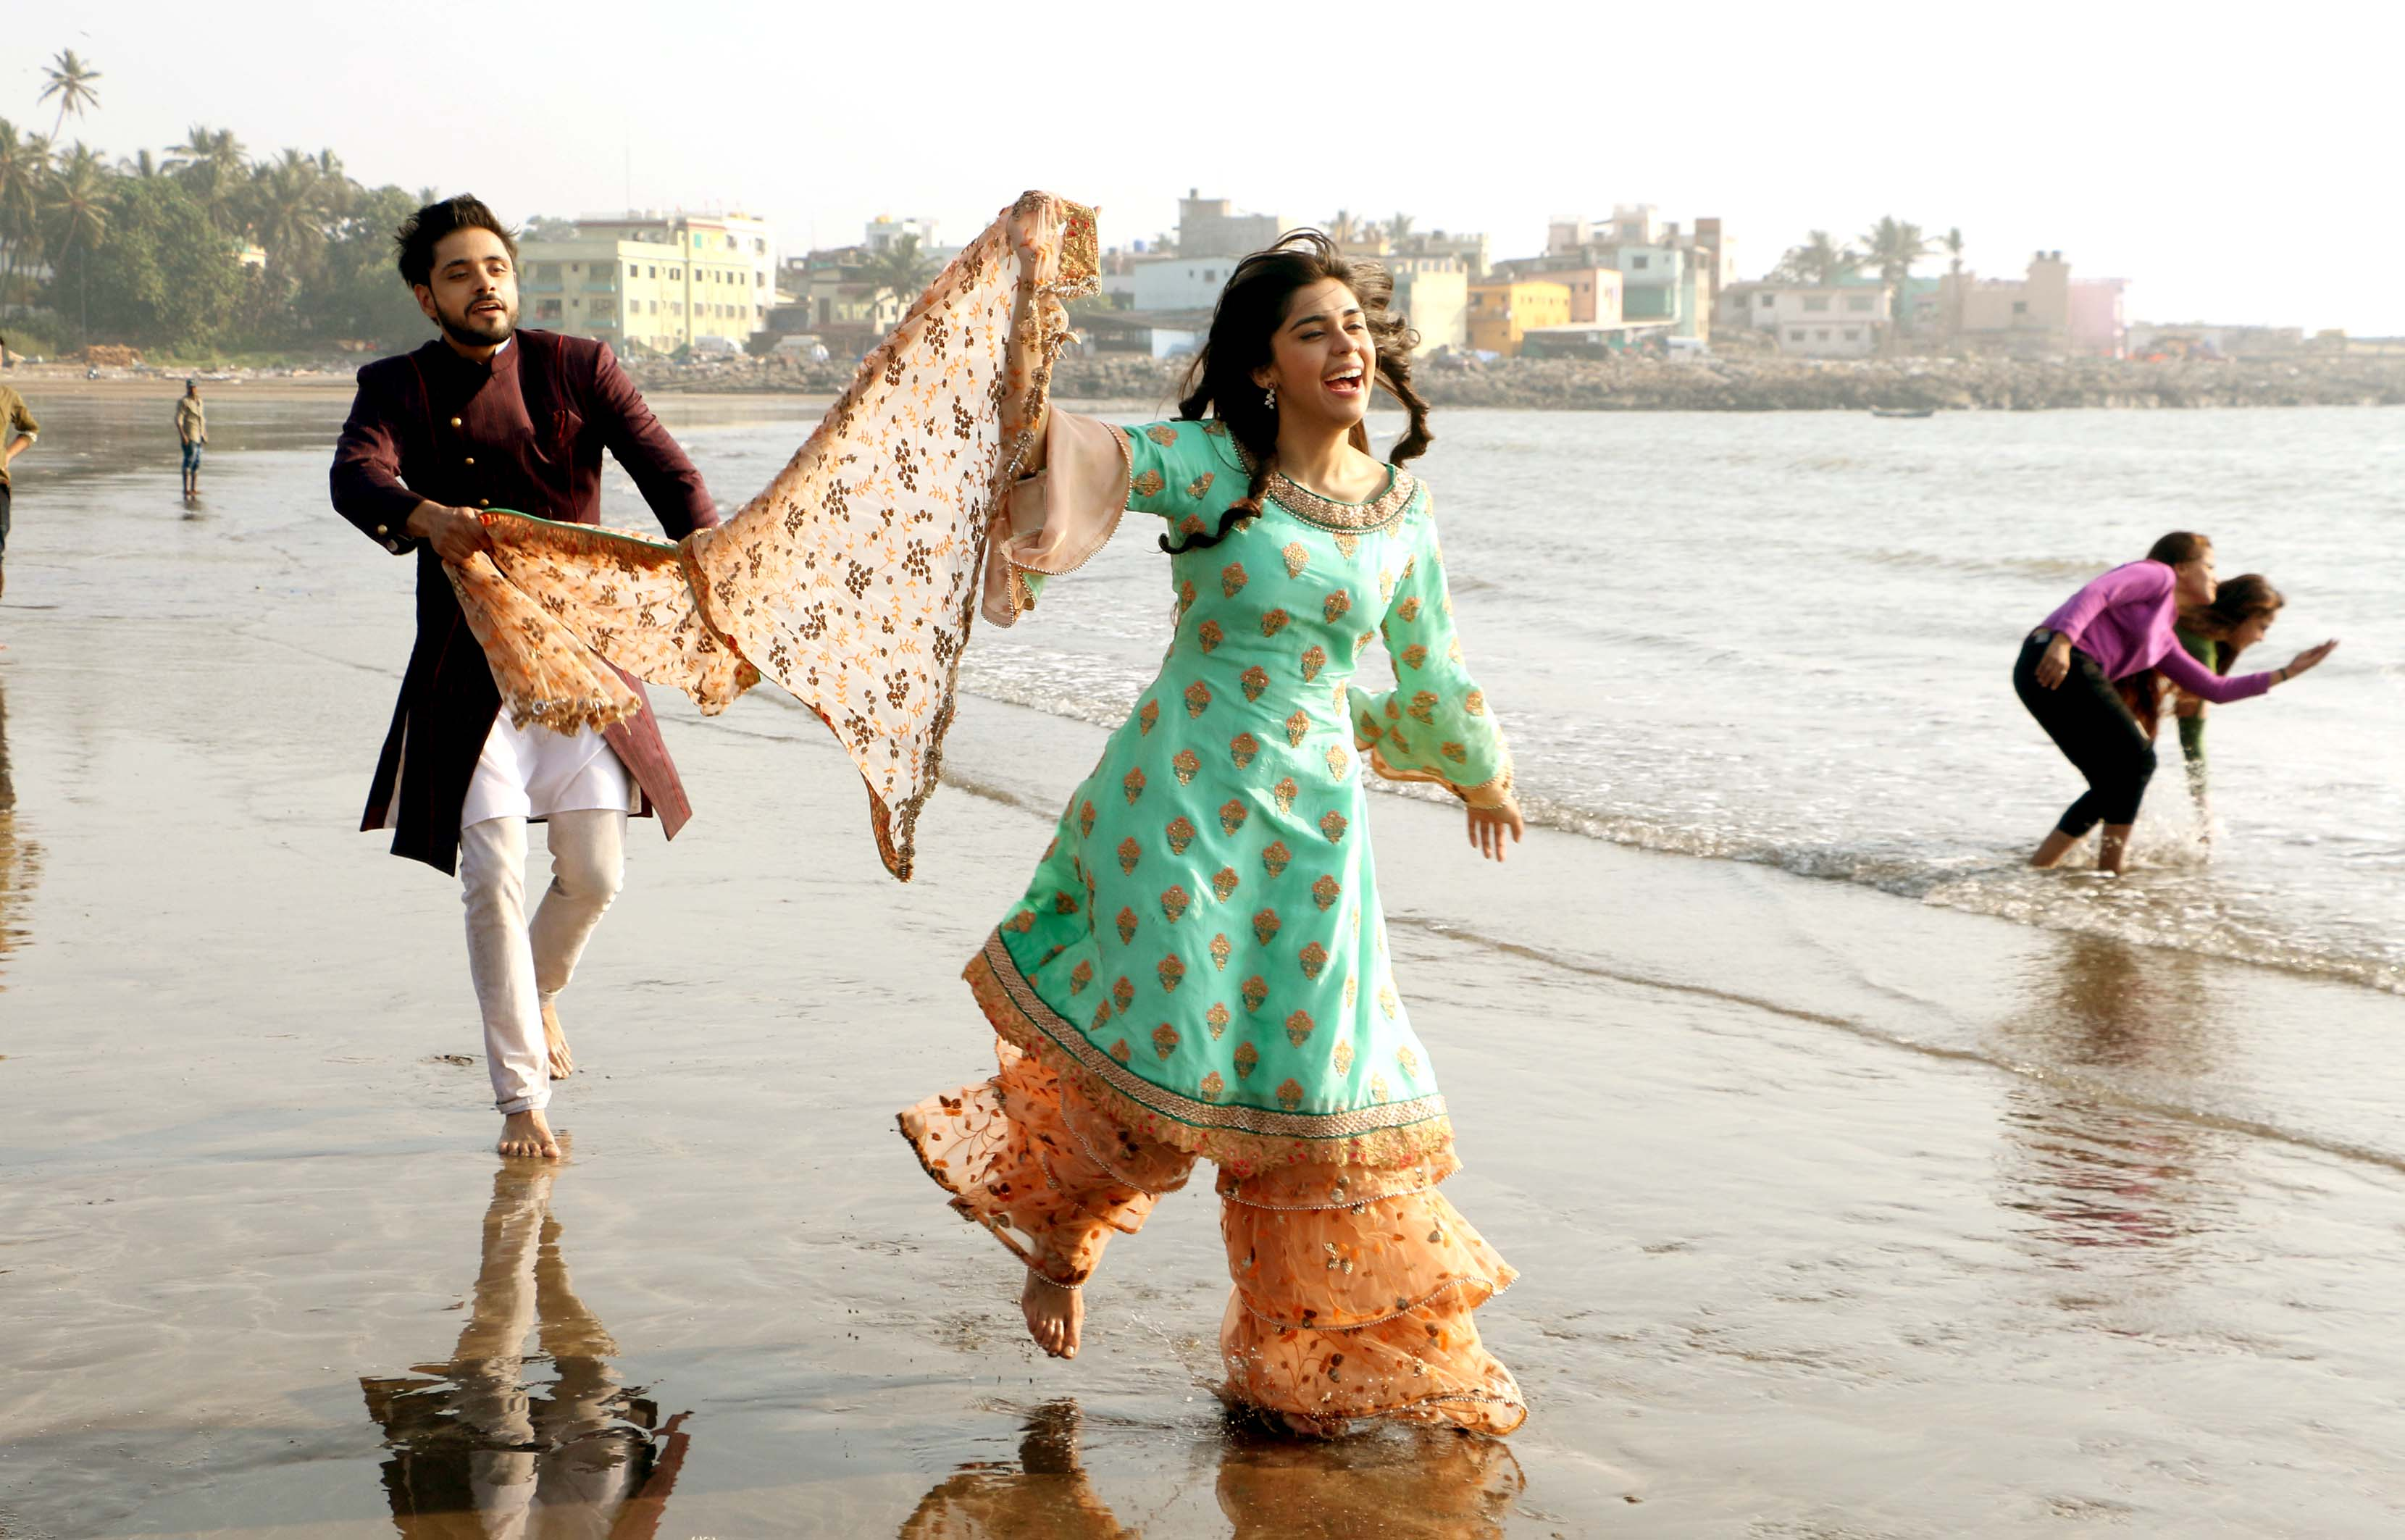 Adnan Khan and Eisha Singh had fun time while shooting outdoor in Mumbai for their serial Ishq Subhan Allah